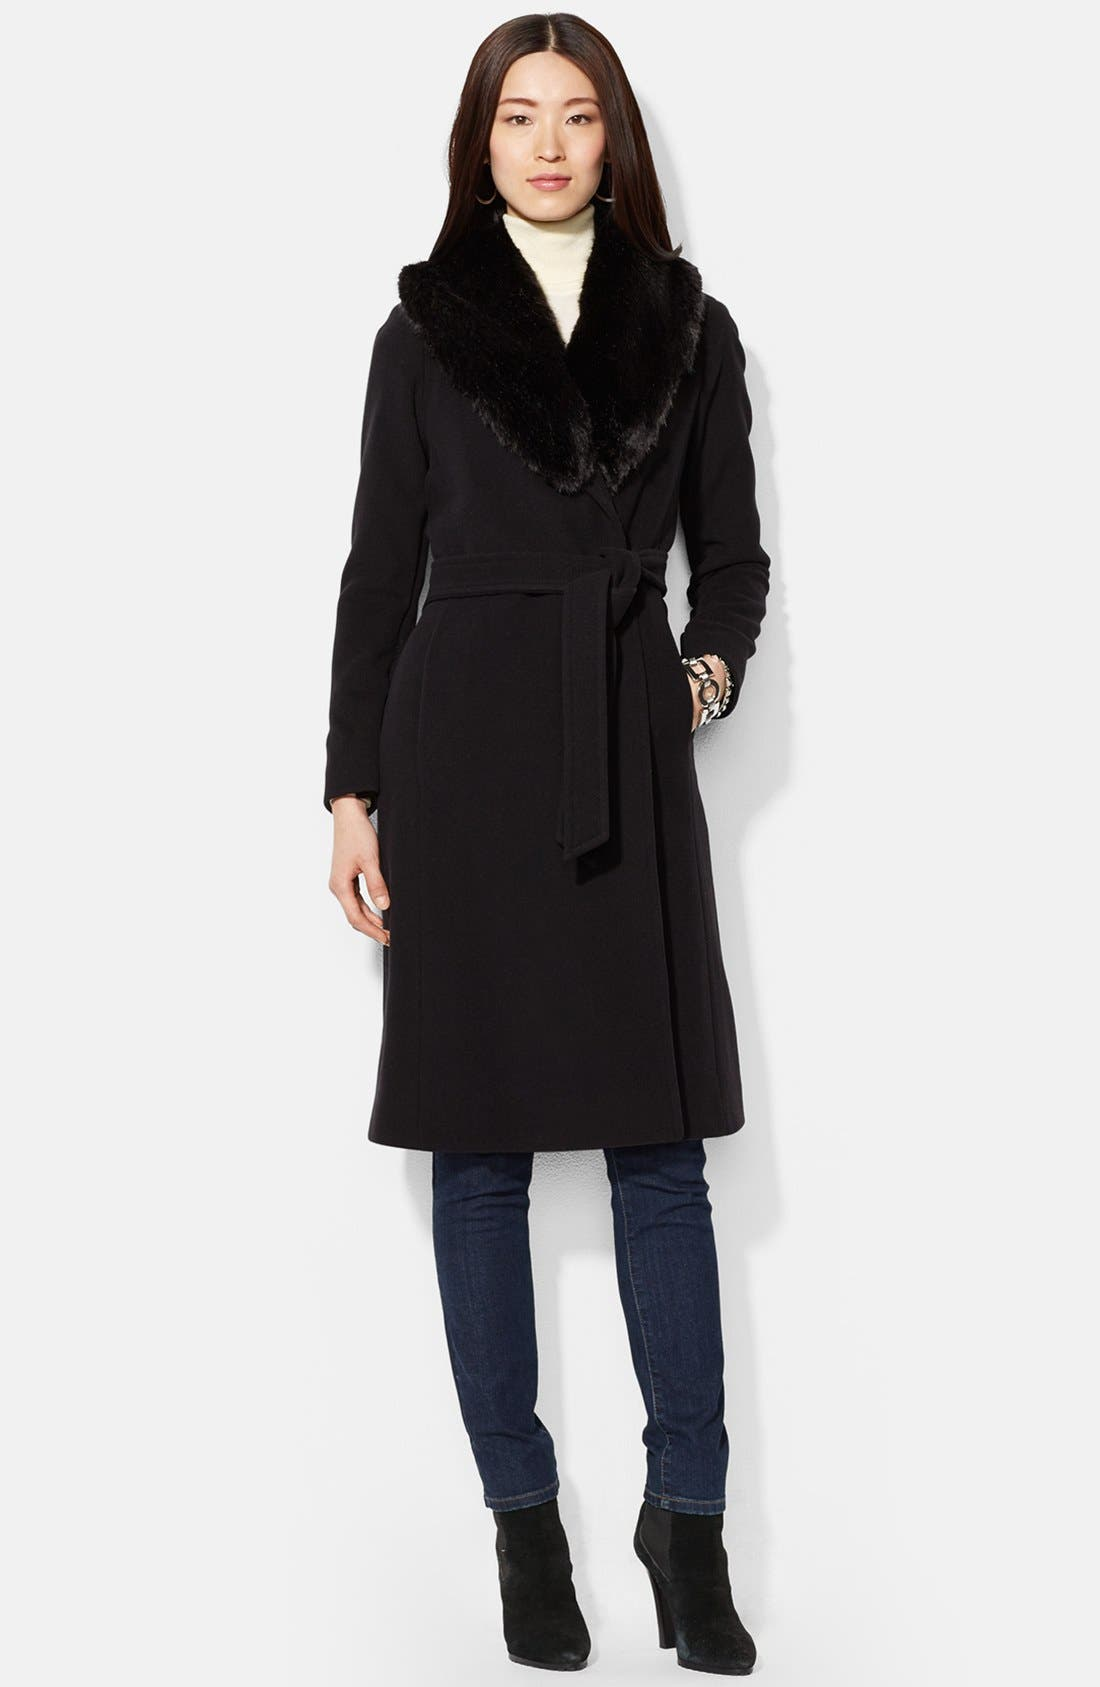 Alternate Image 1 Selected - Lauren Ralph Lauren Faux Fur Trim Wool Blend Wrap Coat (Online Only)